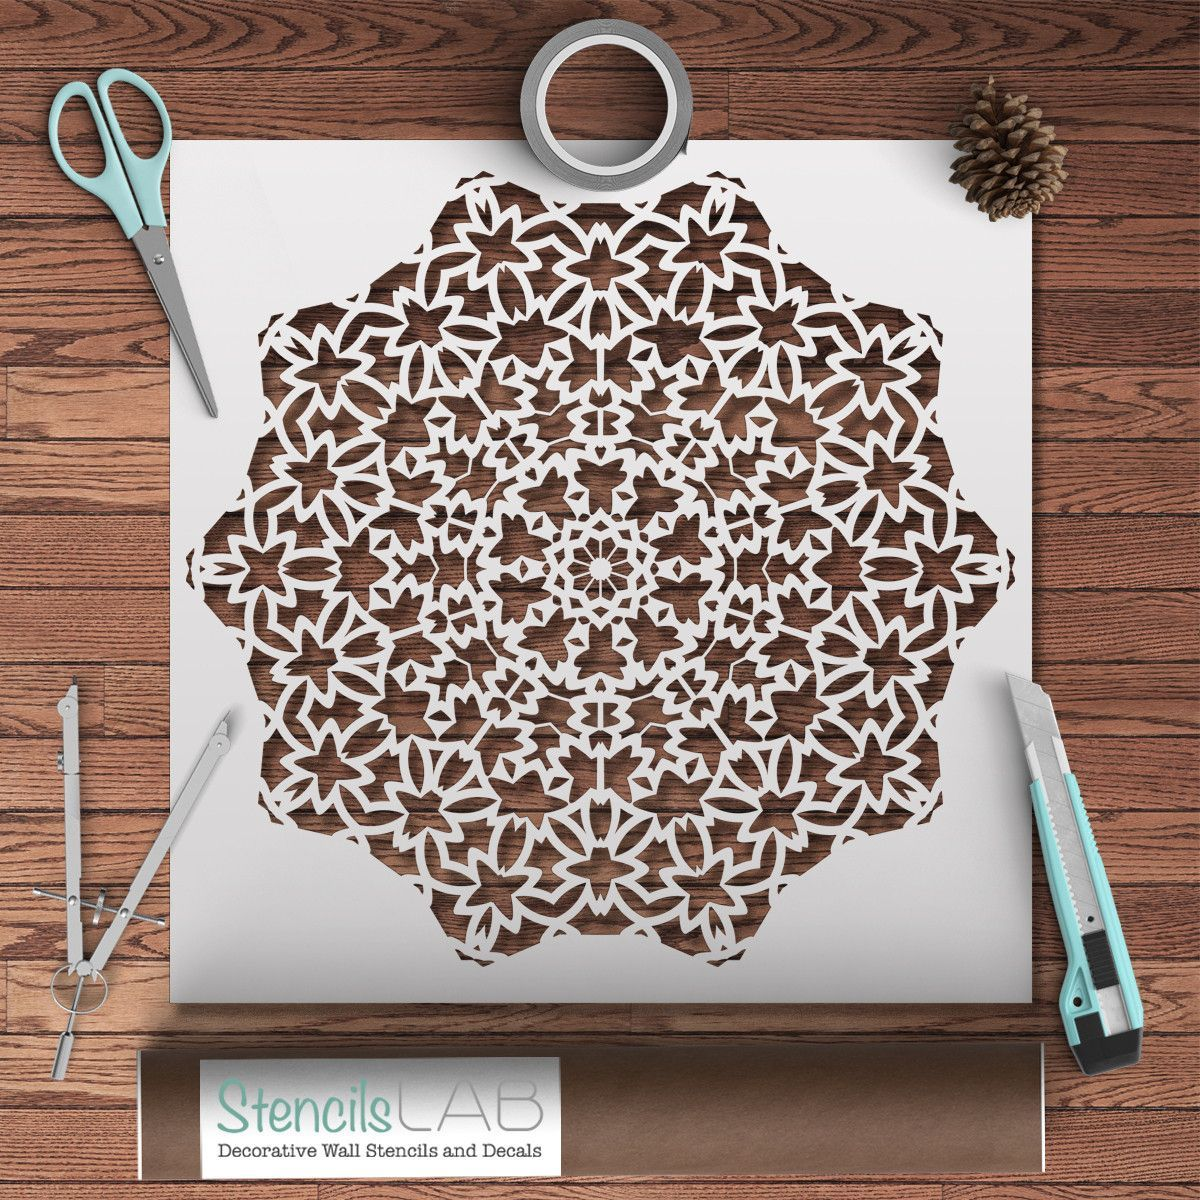 Mandala style stencil for diy decor projects geometric pattern mandala style stencil for diy decor projects geometric pattern stencil for diy decor amipublicfo Gallery